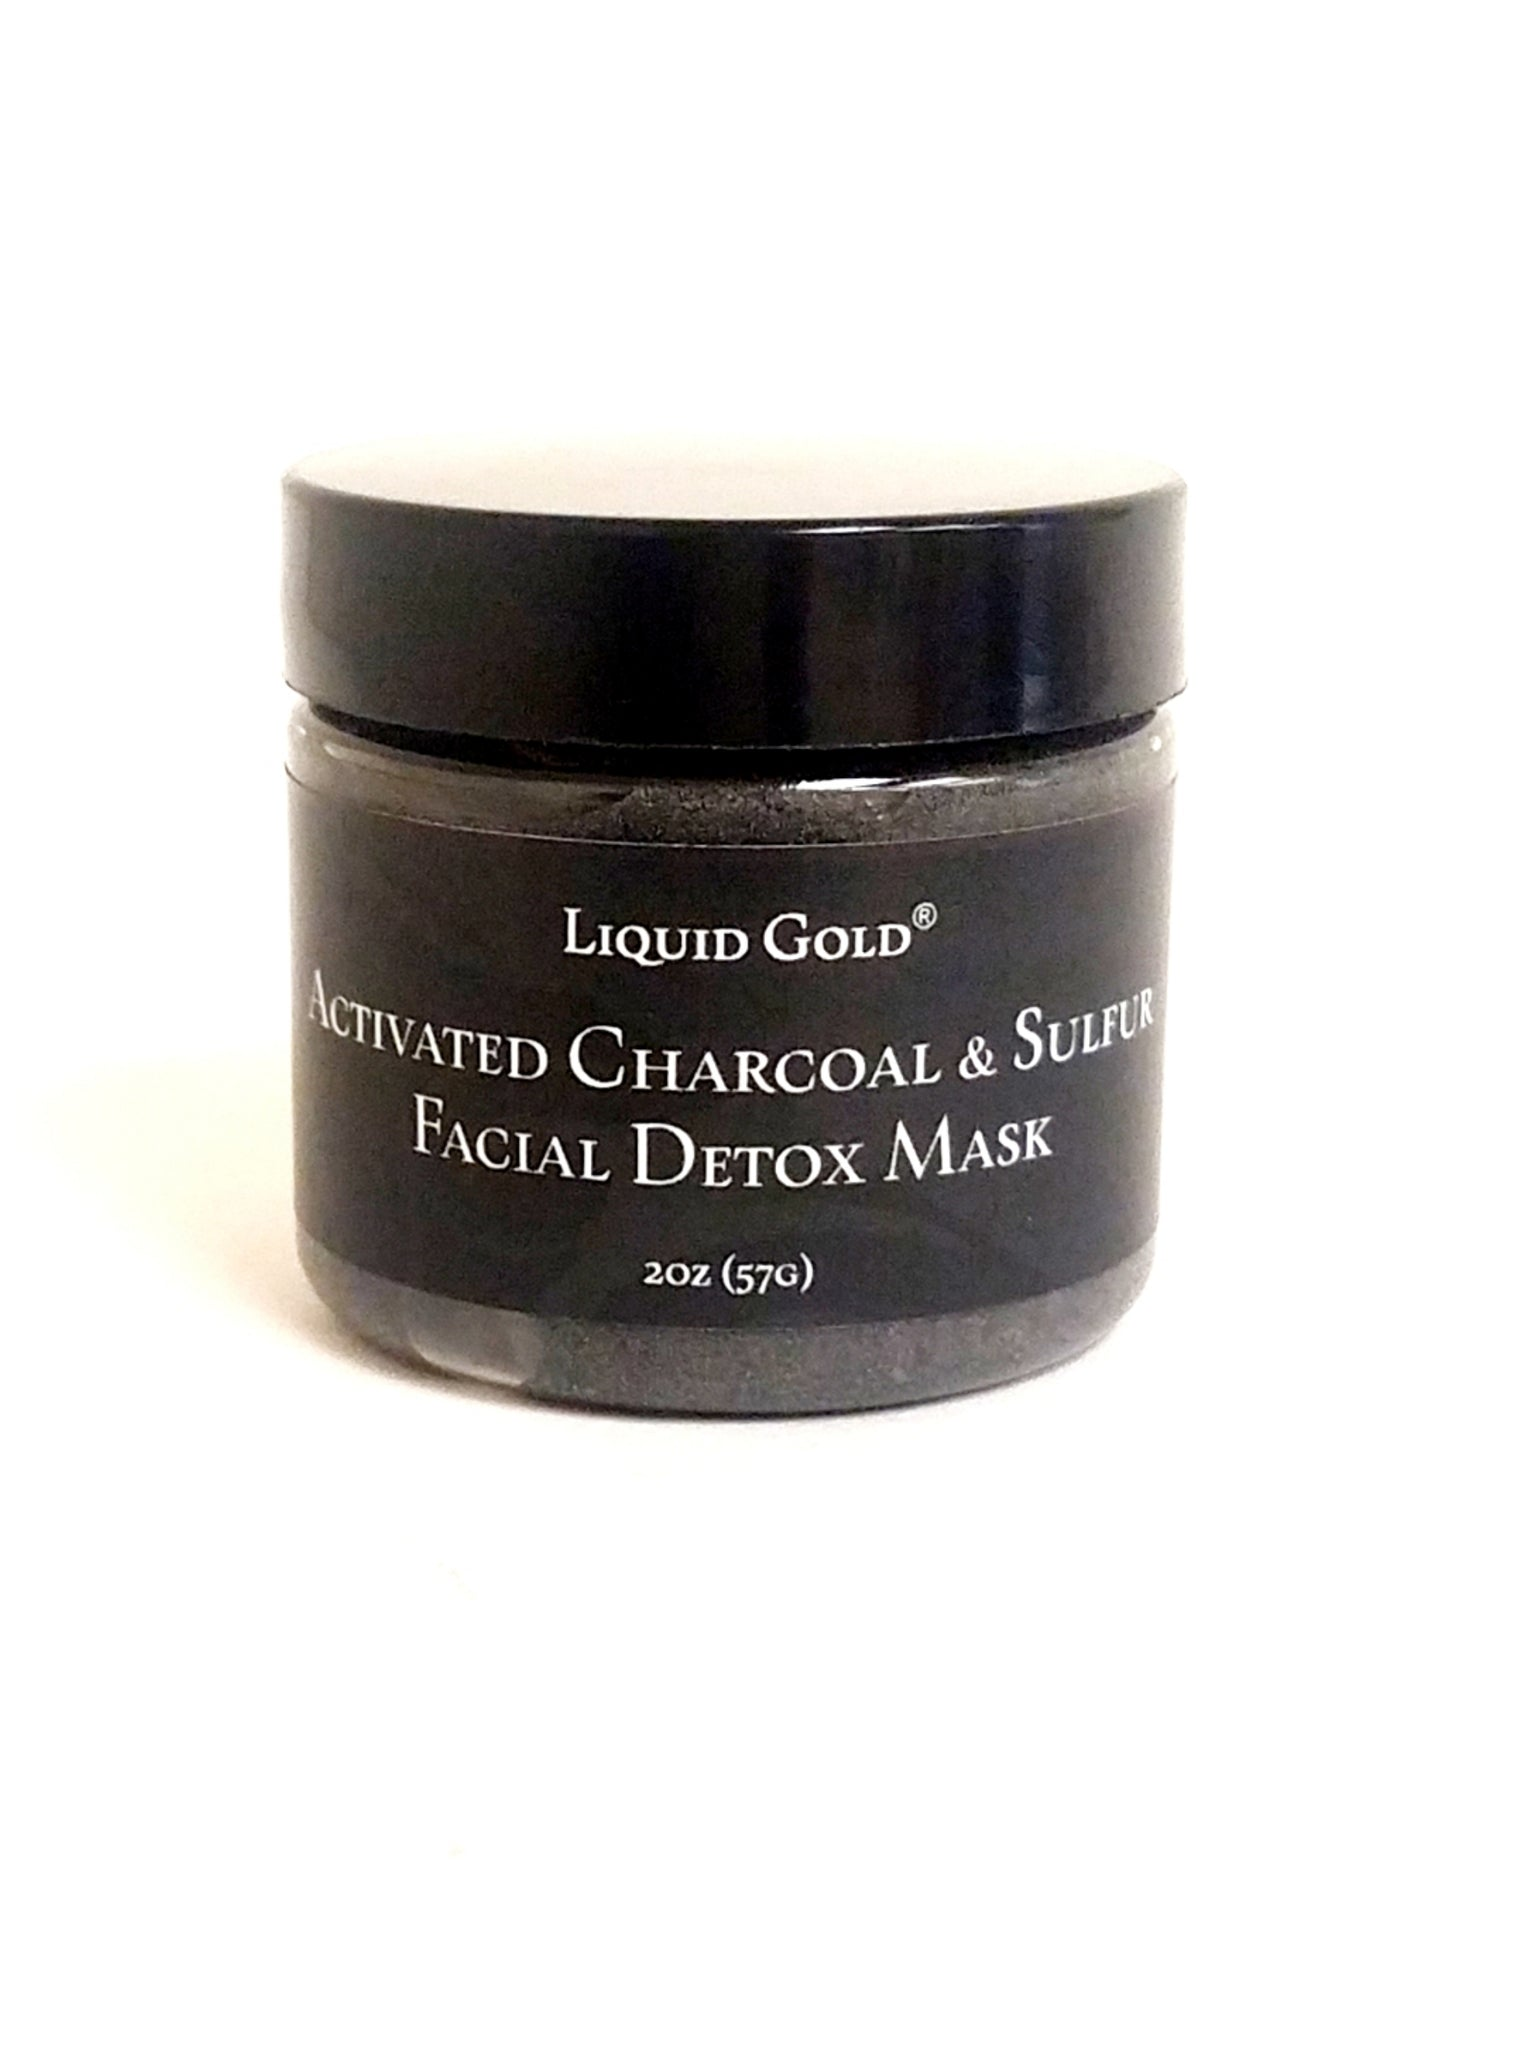 Facial Detox: Activated Charcoal and Sulfur Mask for Clear Beautiful Skin